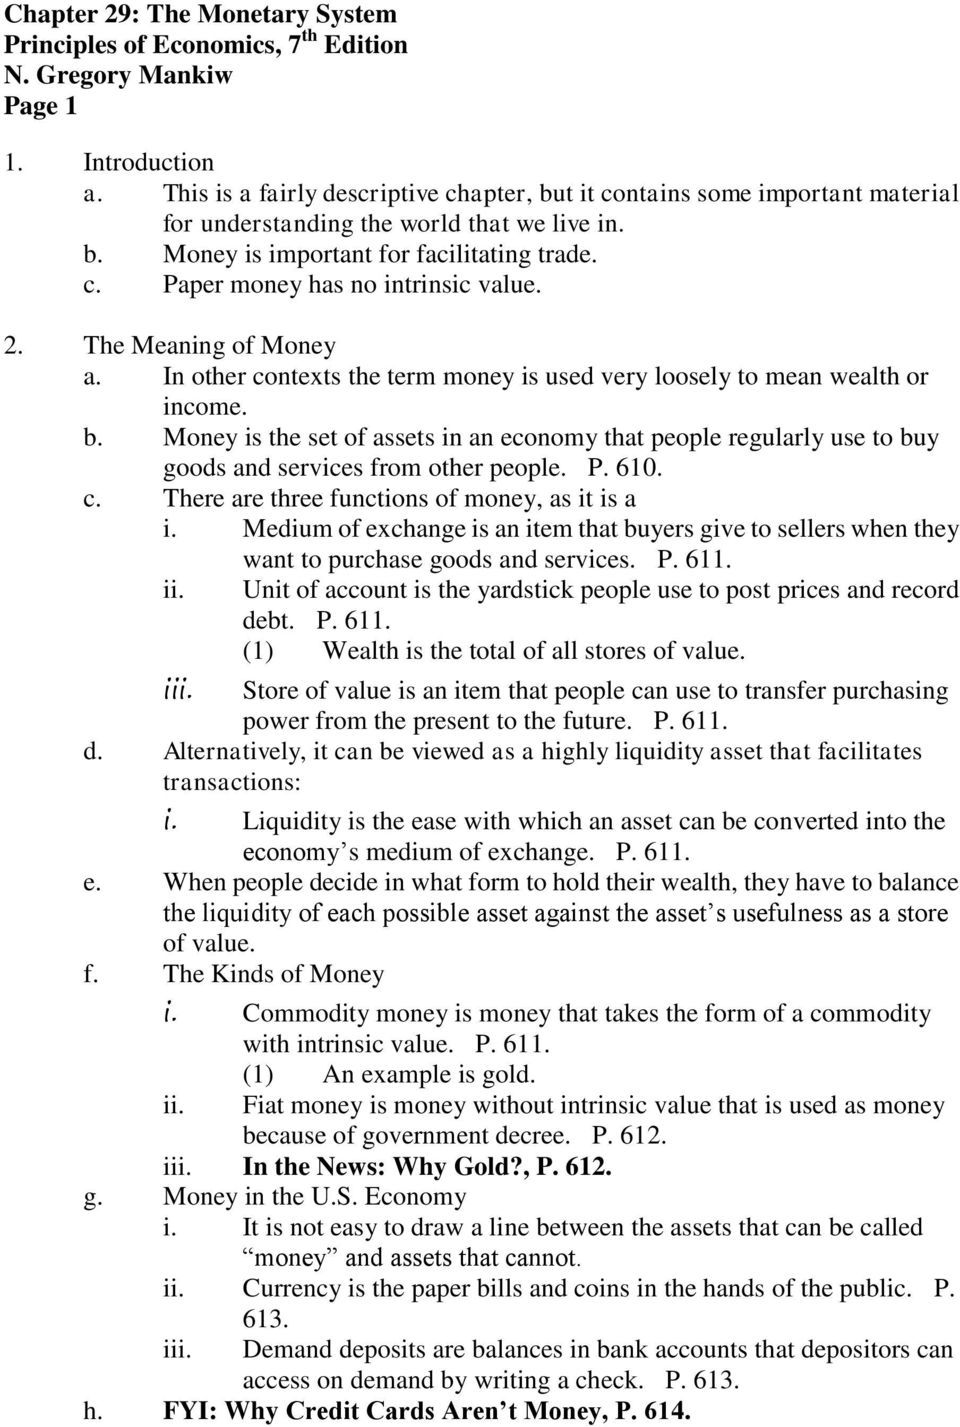 Money is the set of assets in an economy that people regularly use to buy goods and services from other people. P. 610. c. There are three functions of money, as it is a i.